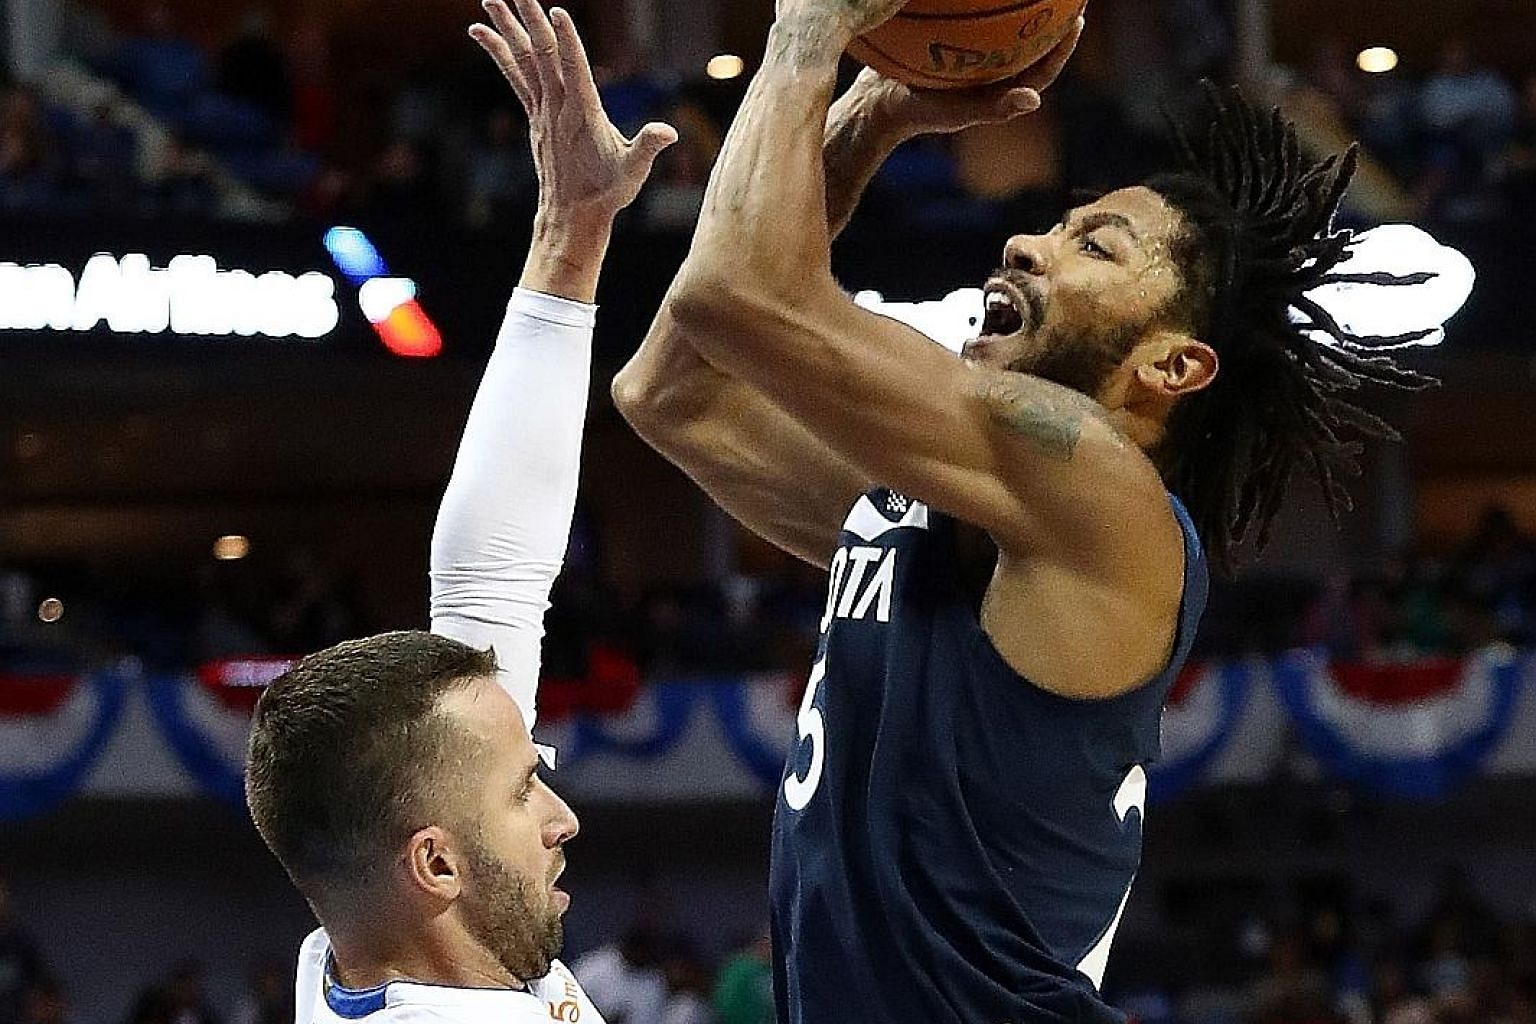 Minnesota's Derrick Rose taking a shot over Dallas' J.J. Barea in their game on Oct 20, when he set his previous season high of 28 points.